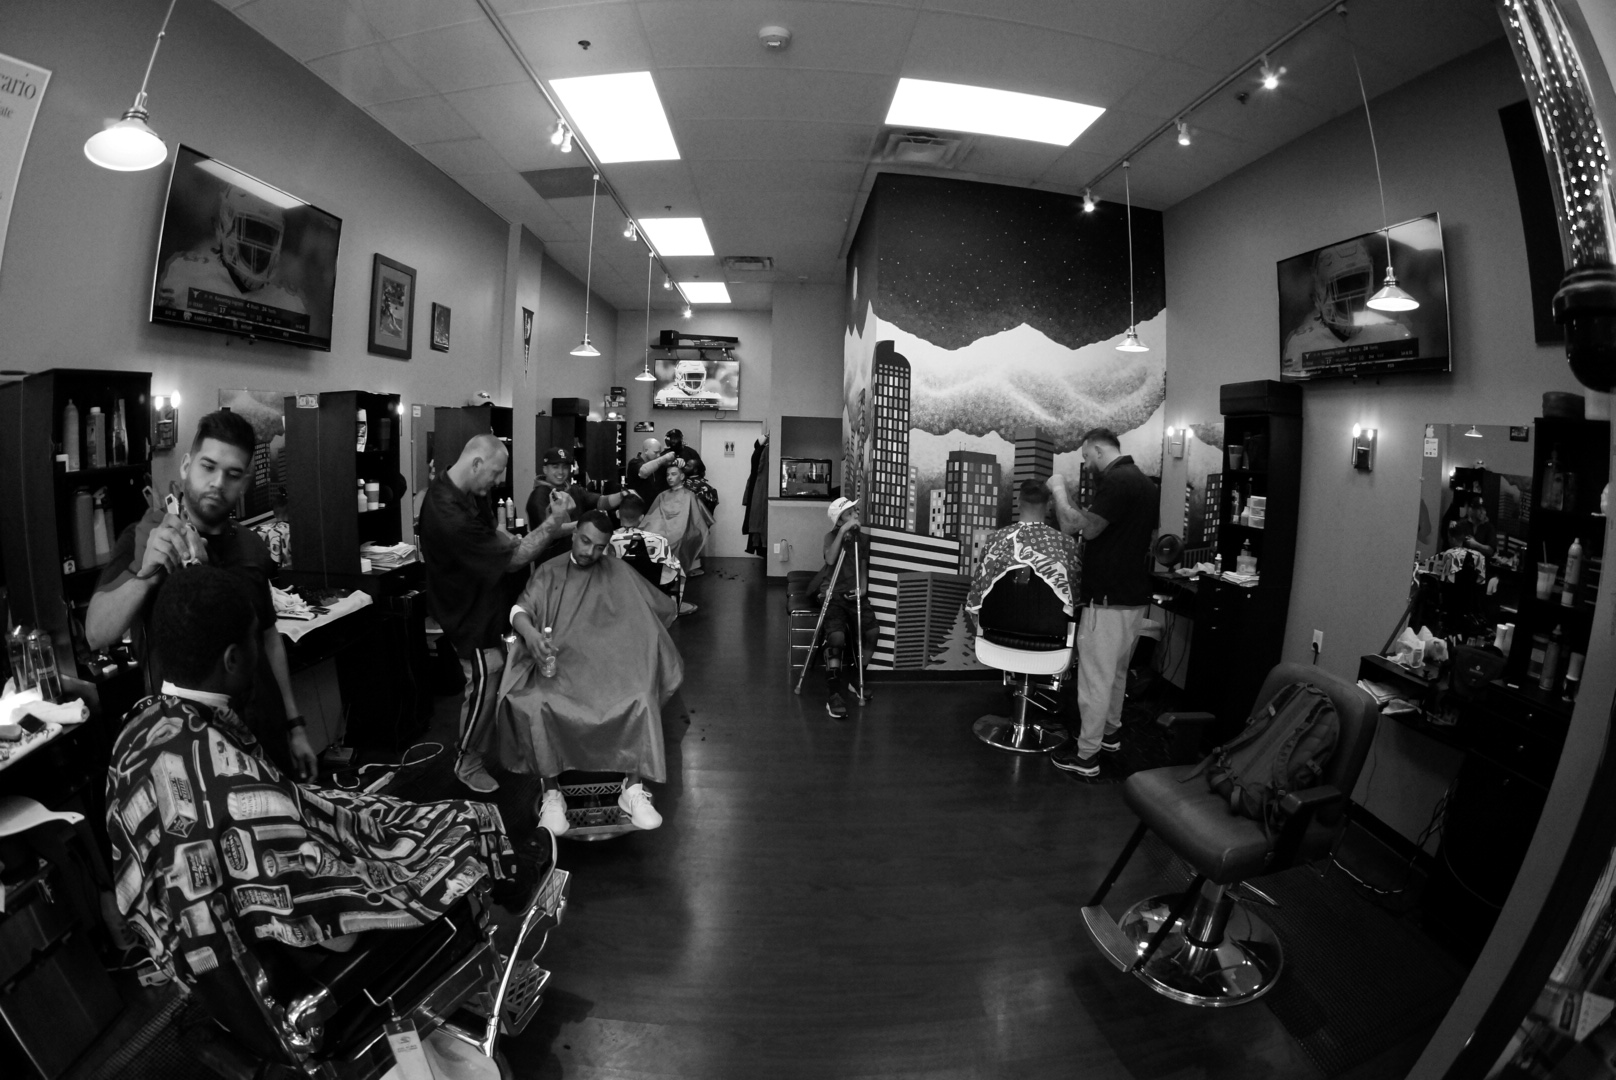 Barber Services - Barbershop services include:Mens cuts, kids cuts, fades, line ups, beard trims, straight razor shaves, parts, design, color and shampoo.